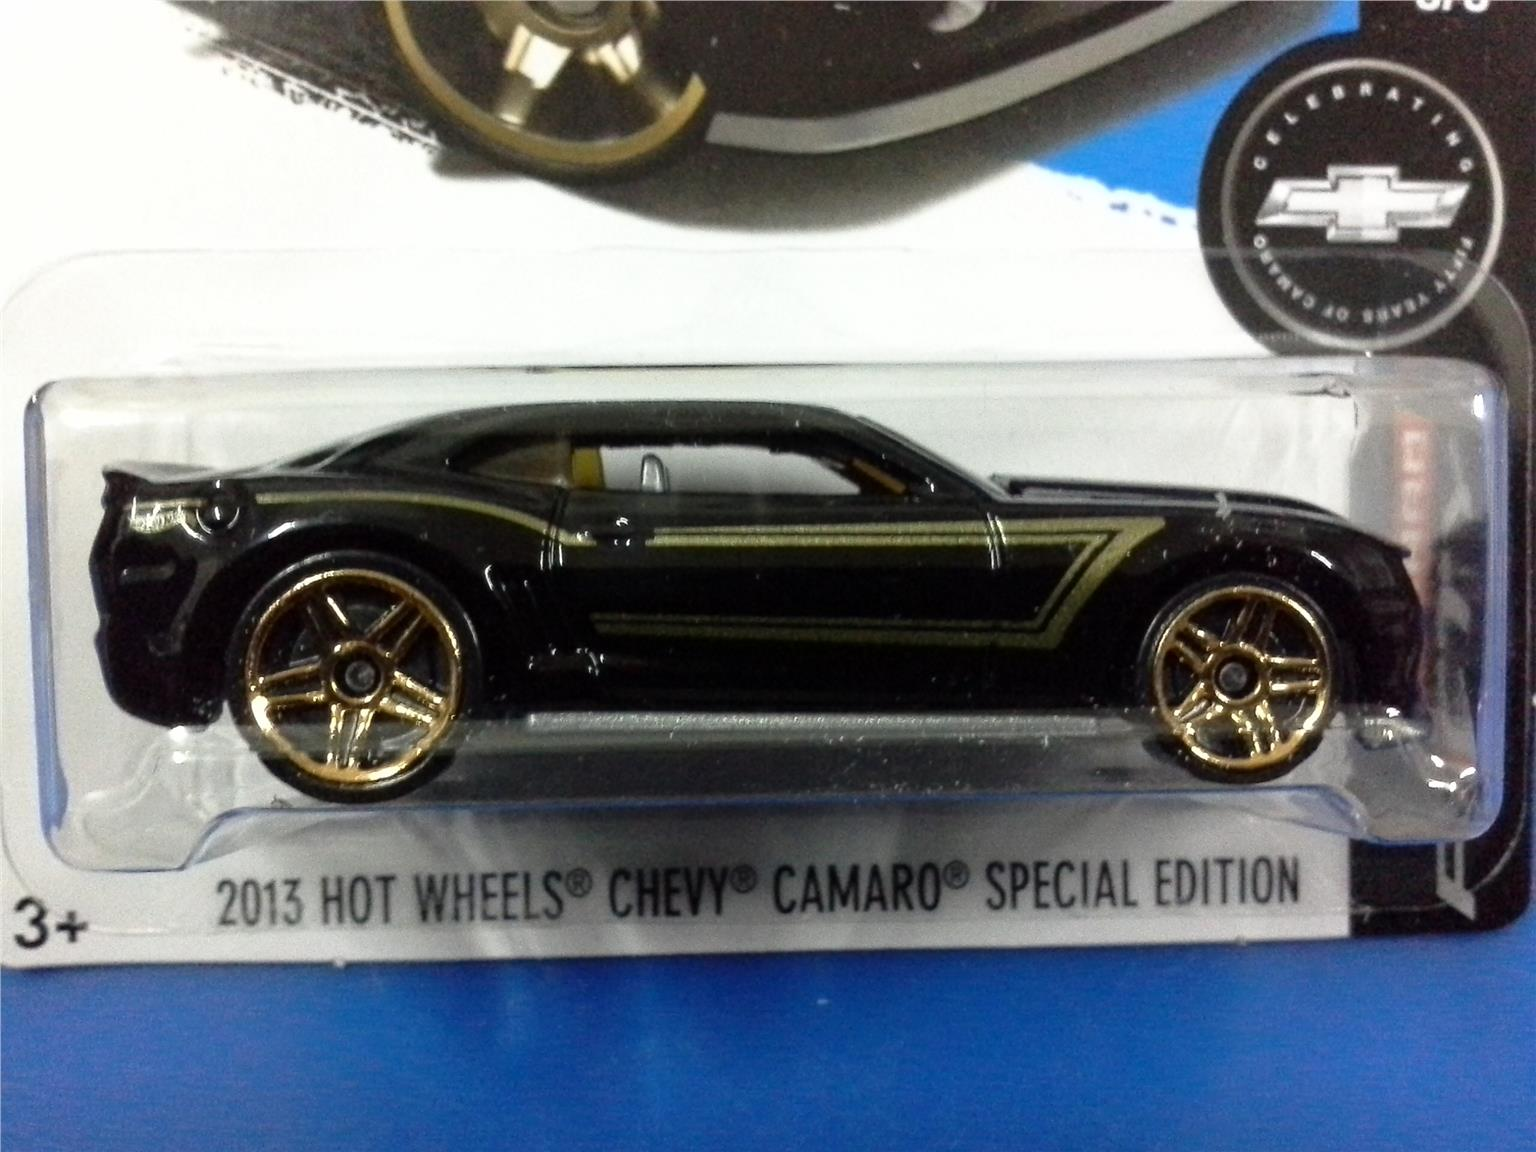 2017 Hot Wheels 2013 CHEVY CAMARO SP (end 4/24/2018 4:15 AM)